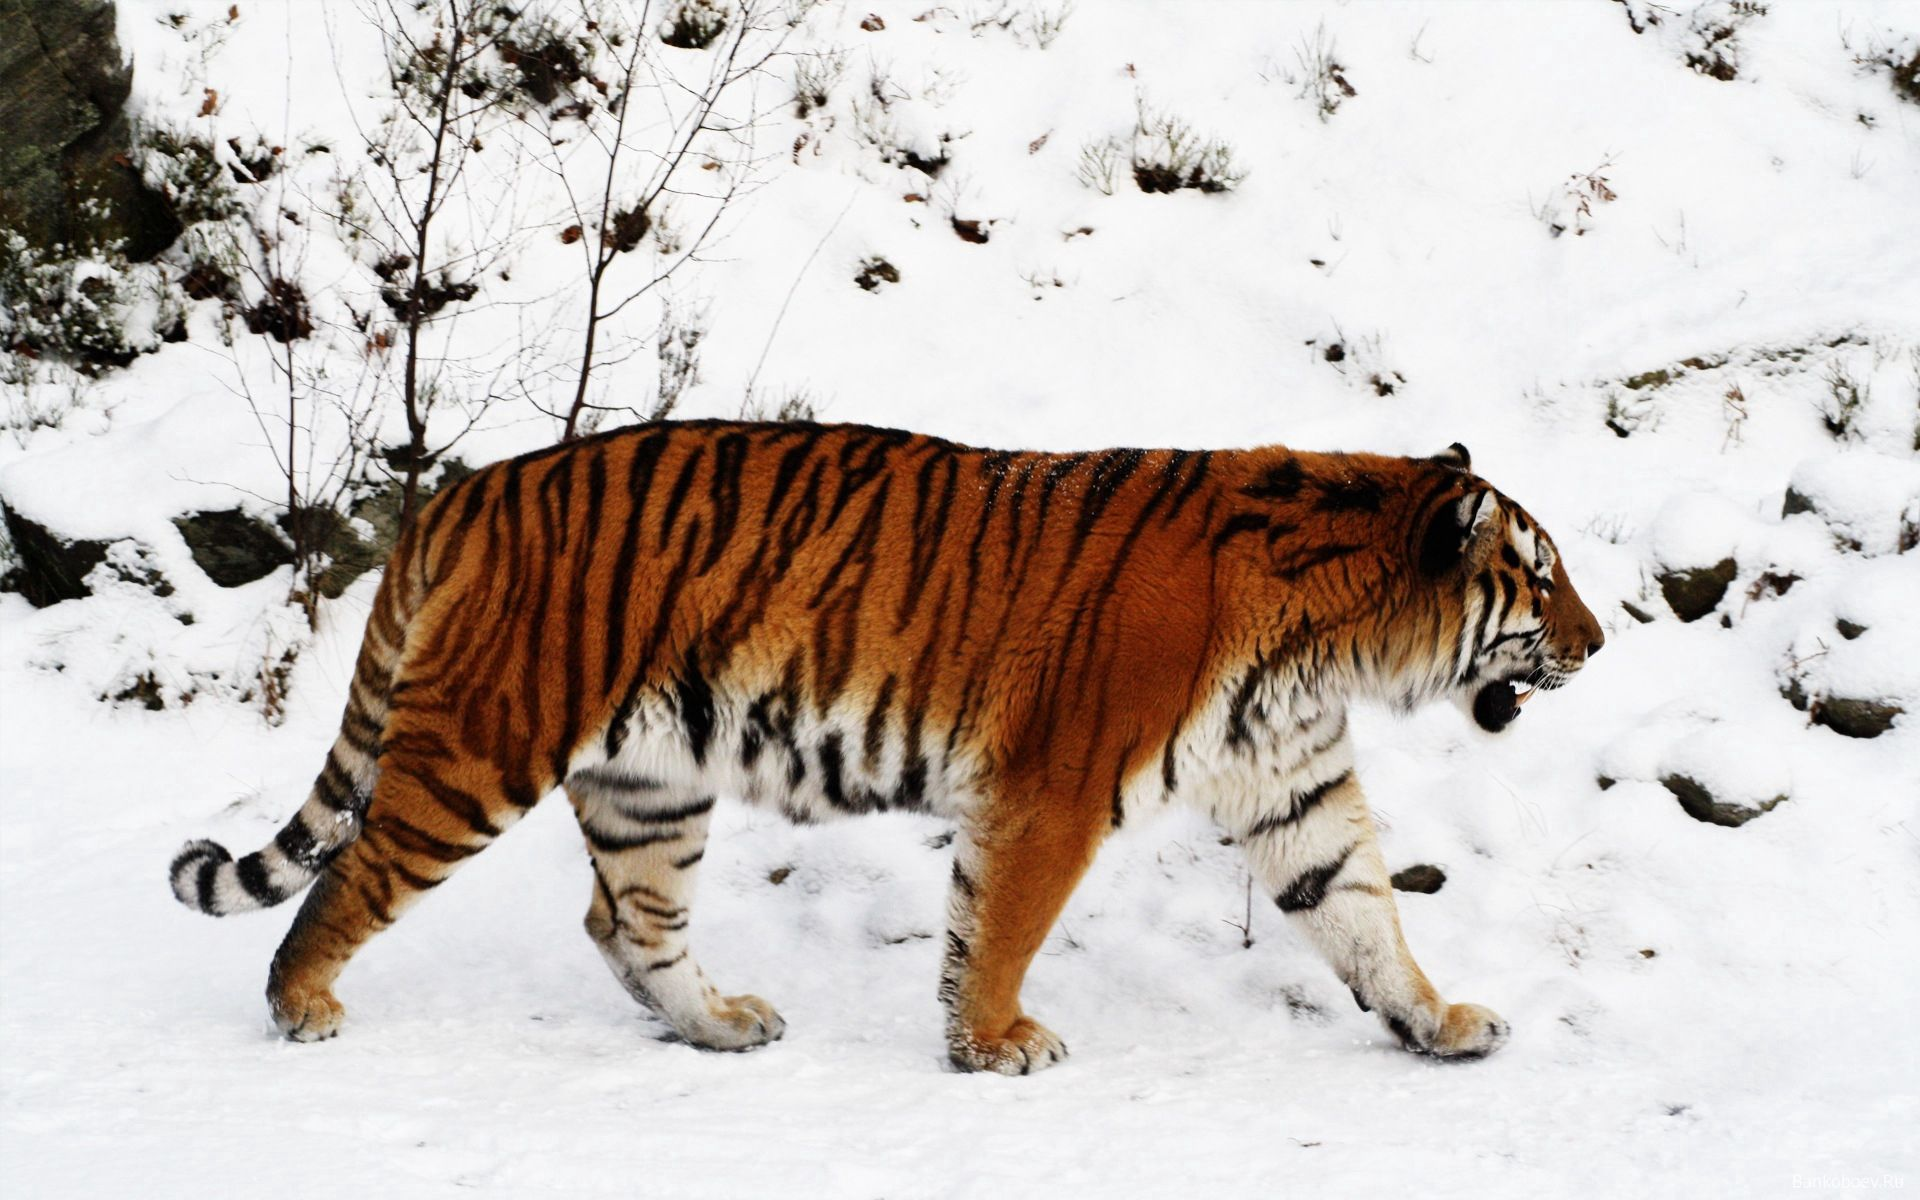 63571 download wallpaper Animals, Tiger, Snow, Stroll, Color, Big Cat, Predator screensavers and pictures for free